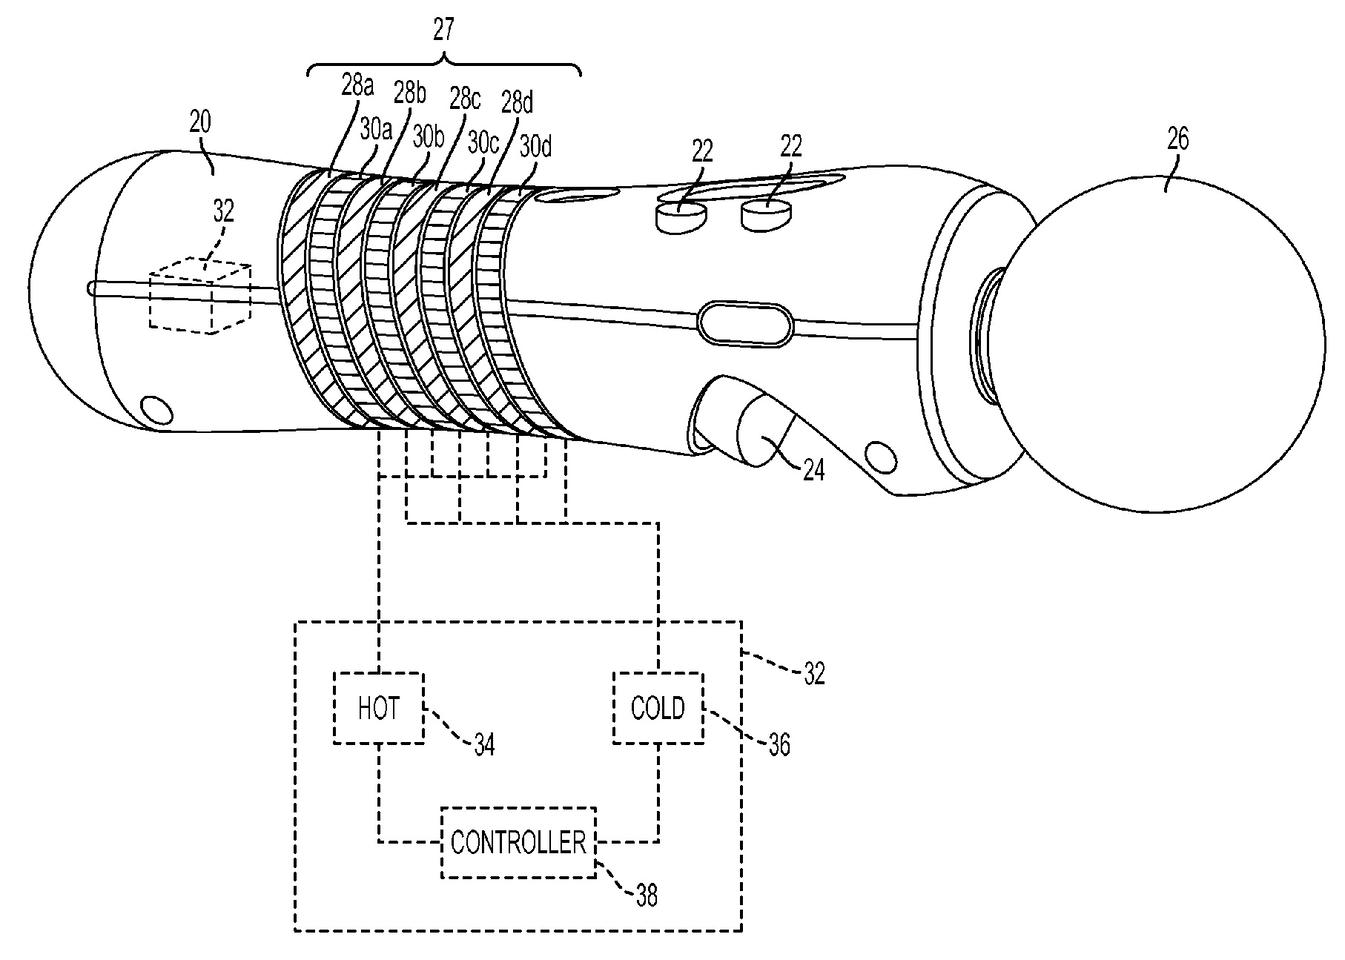 Sony received a patent recently for a PS3 Move controller that changes temperature between hot and cold in response to in-game actions